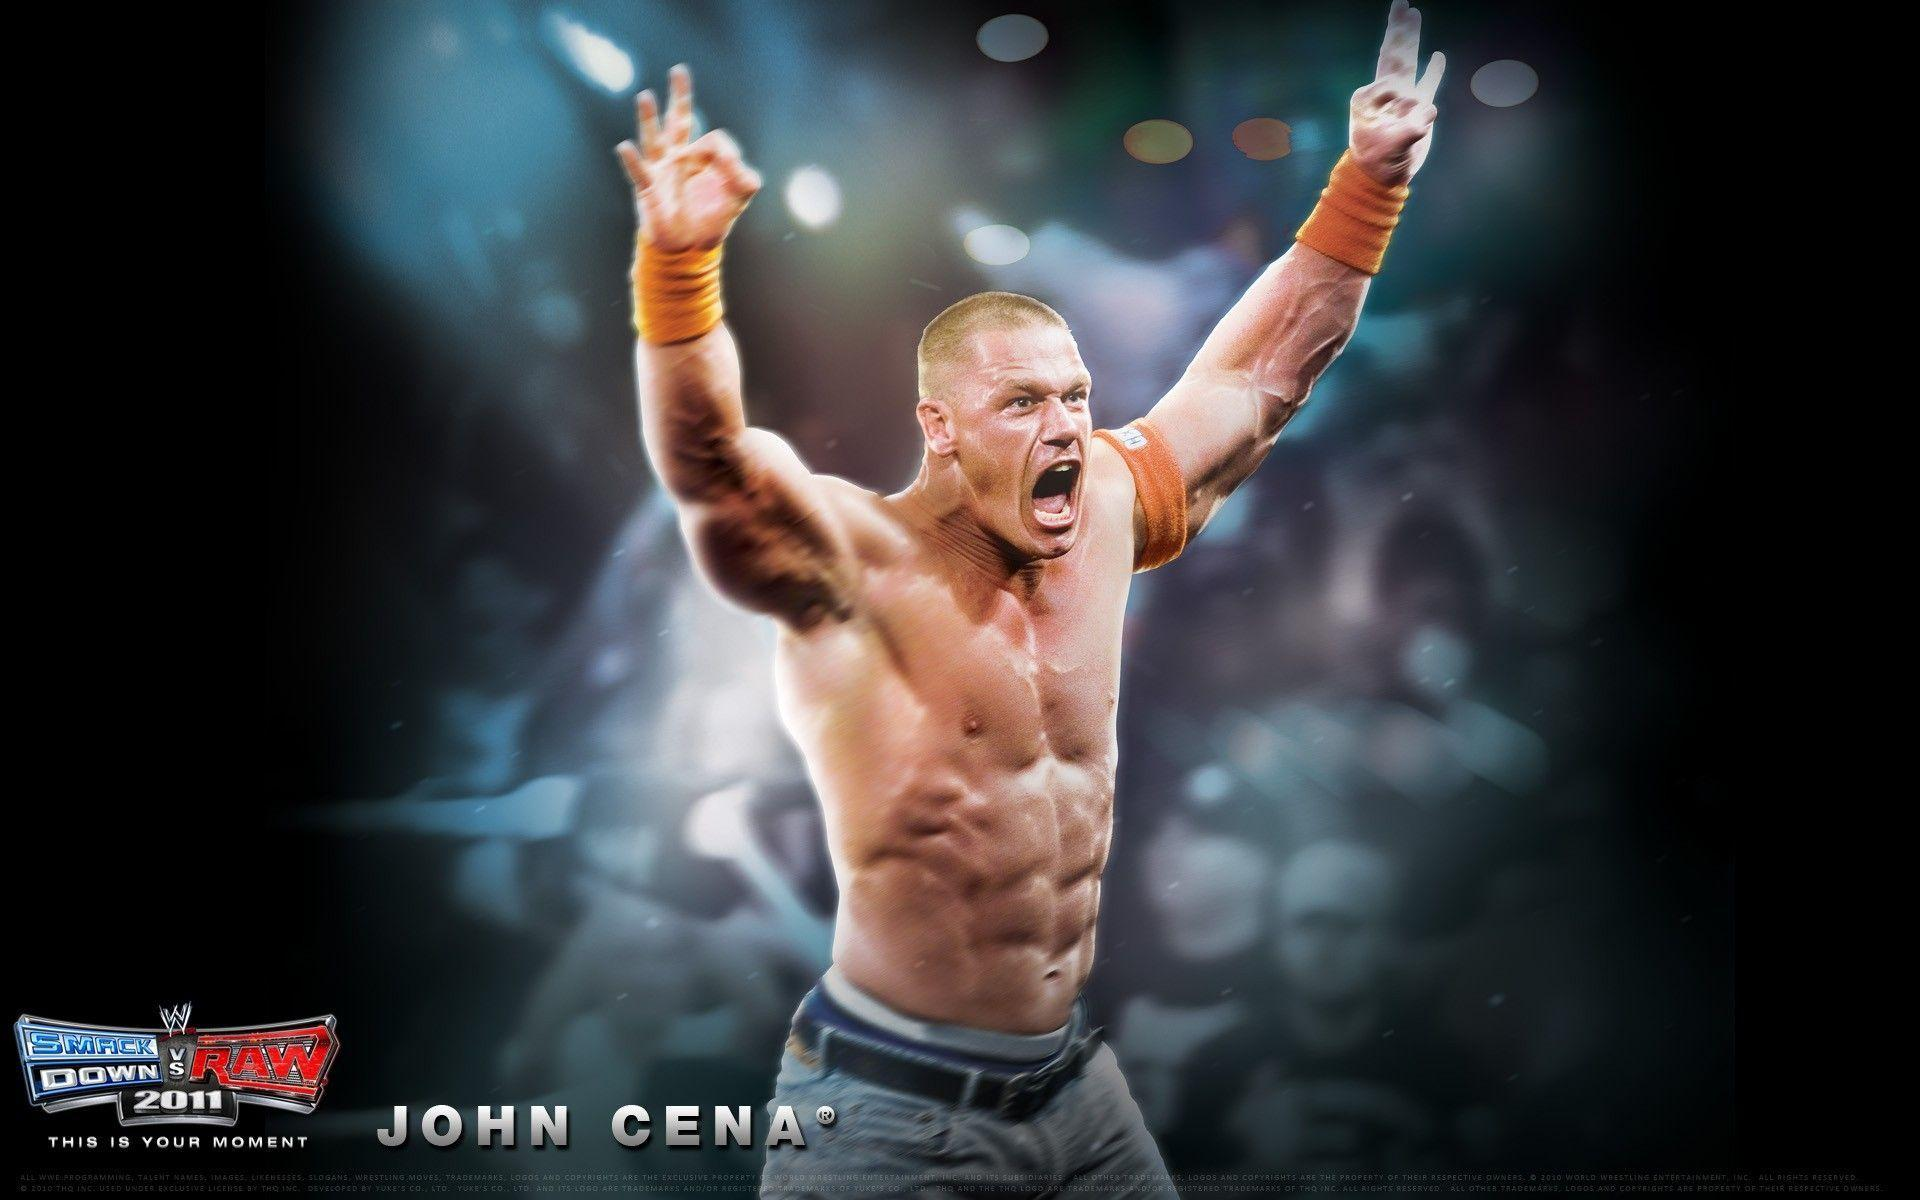 John Cena Wallpaper | HD Wallpapers, backgrounds high resolution ...